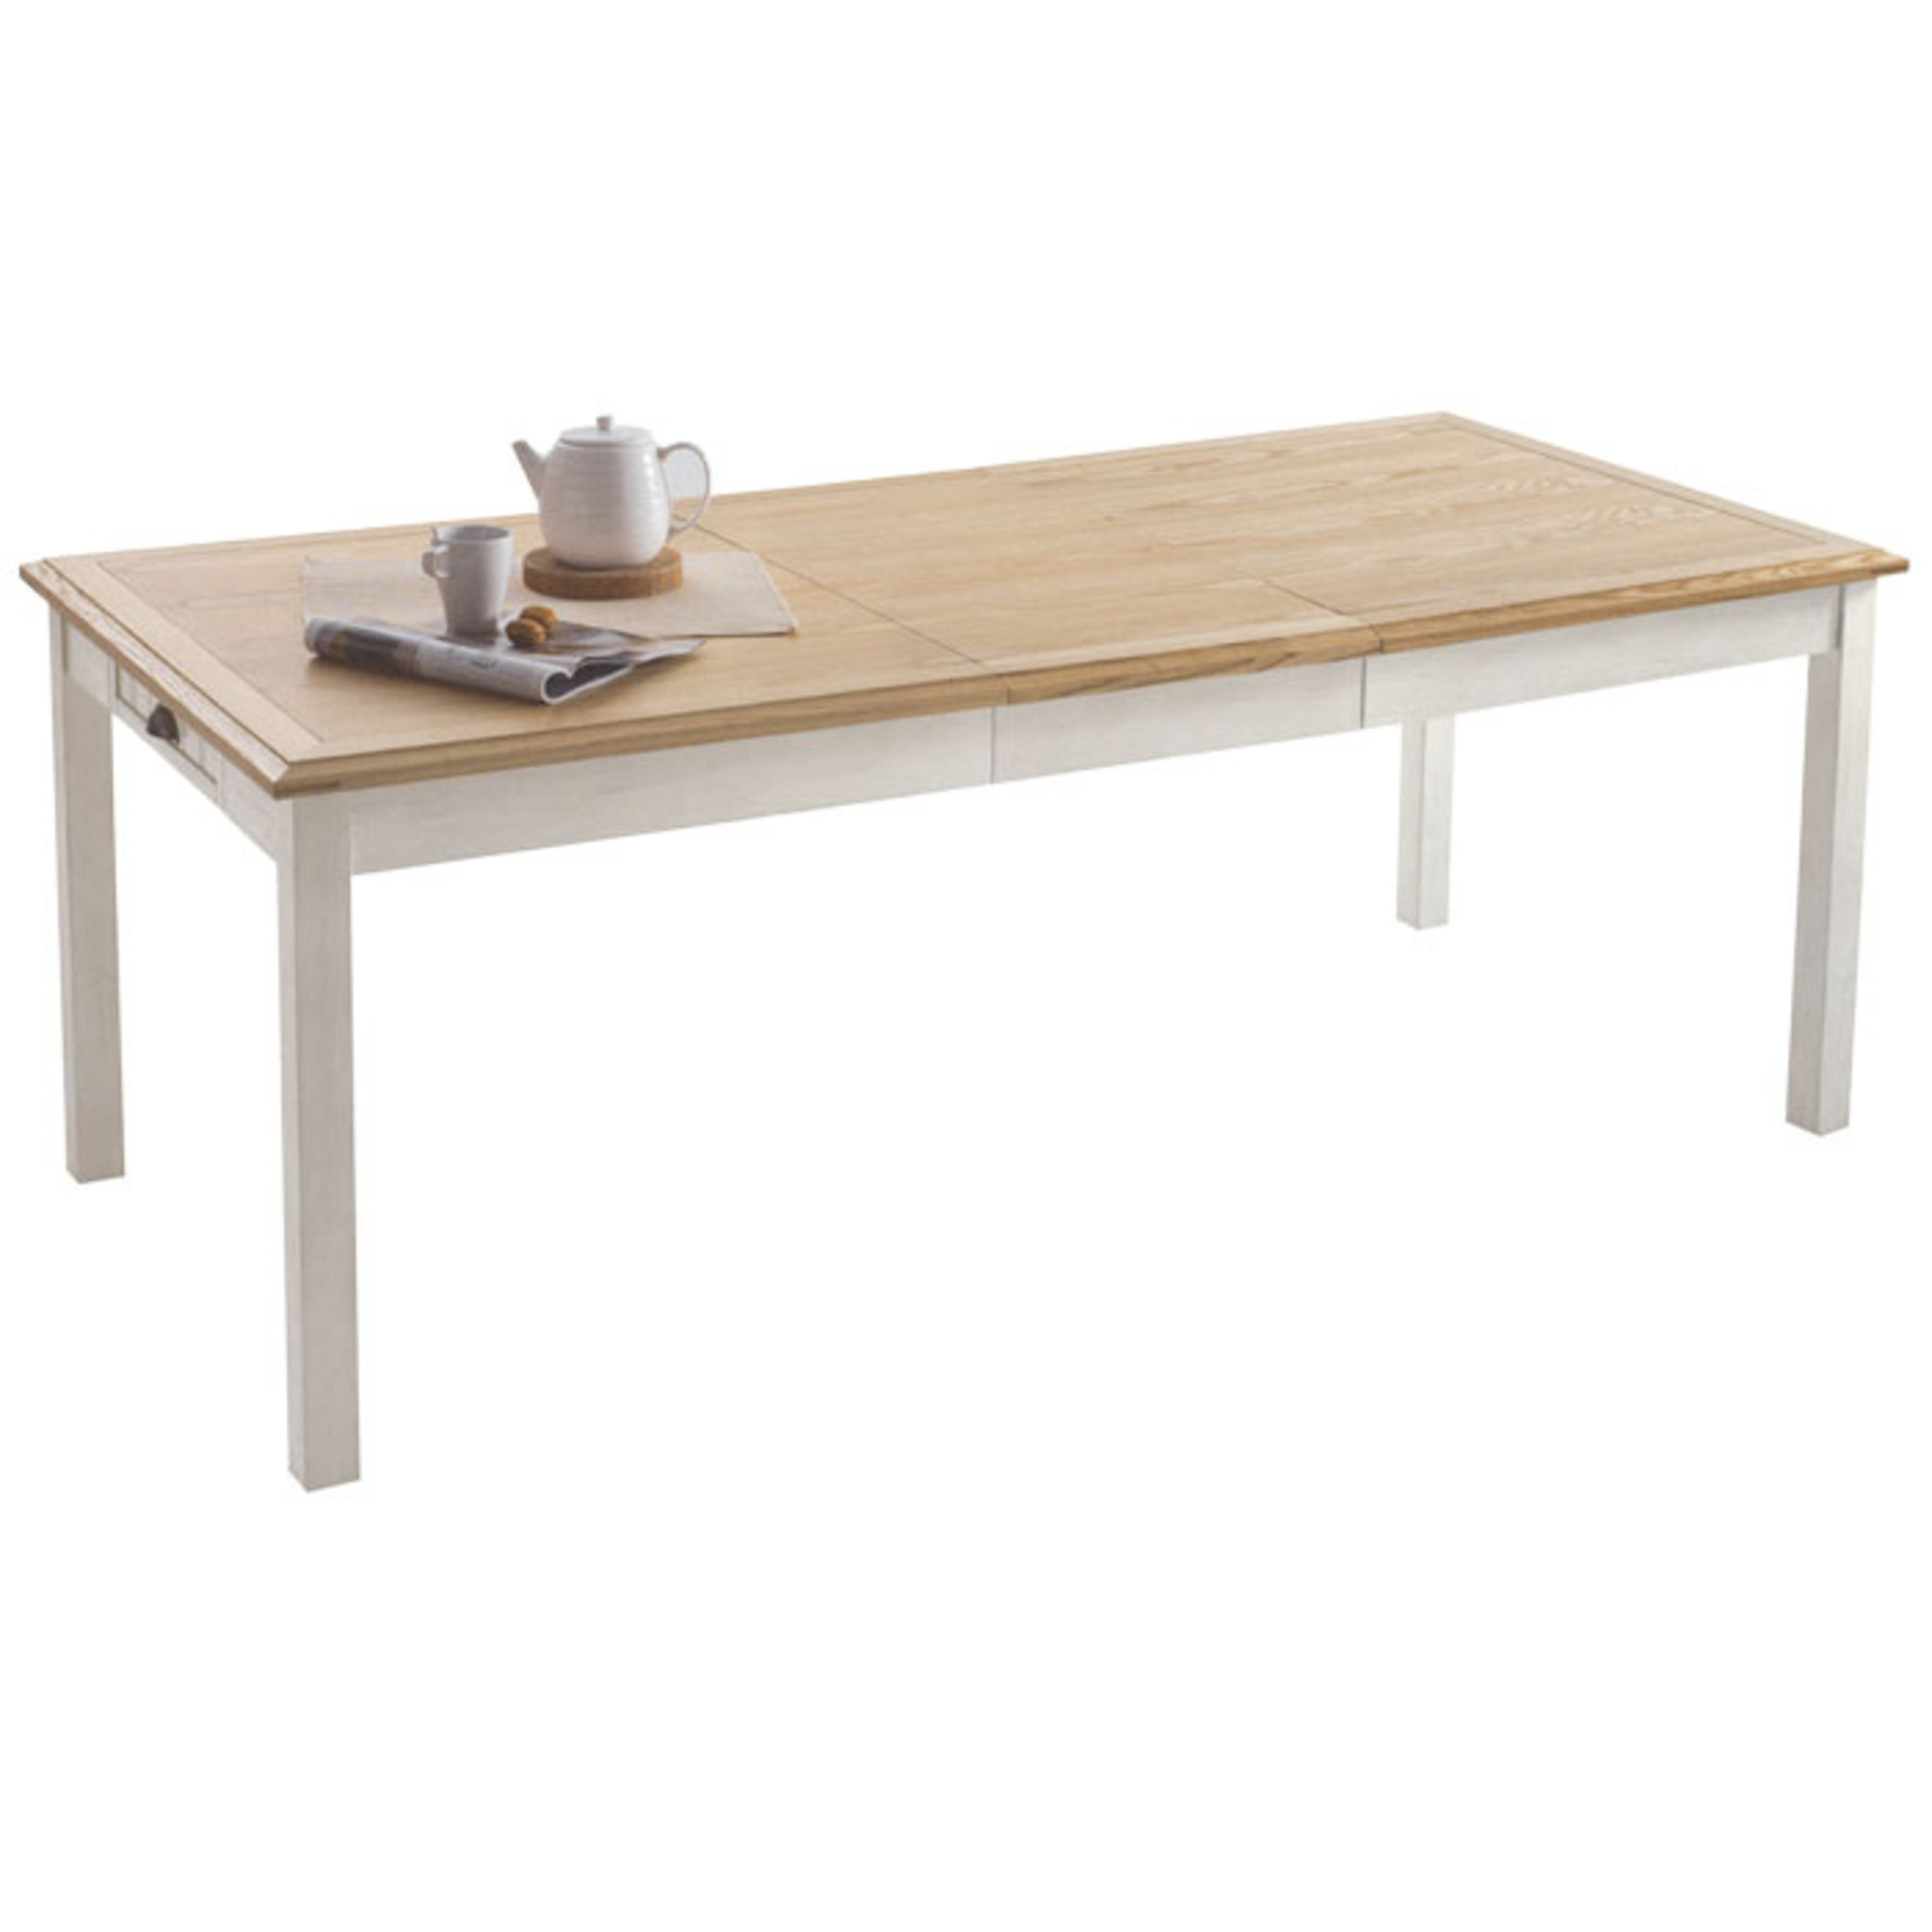 Table rectangulaire allonge berling blanc patin - Table en bois blanche ...